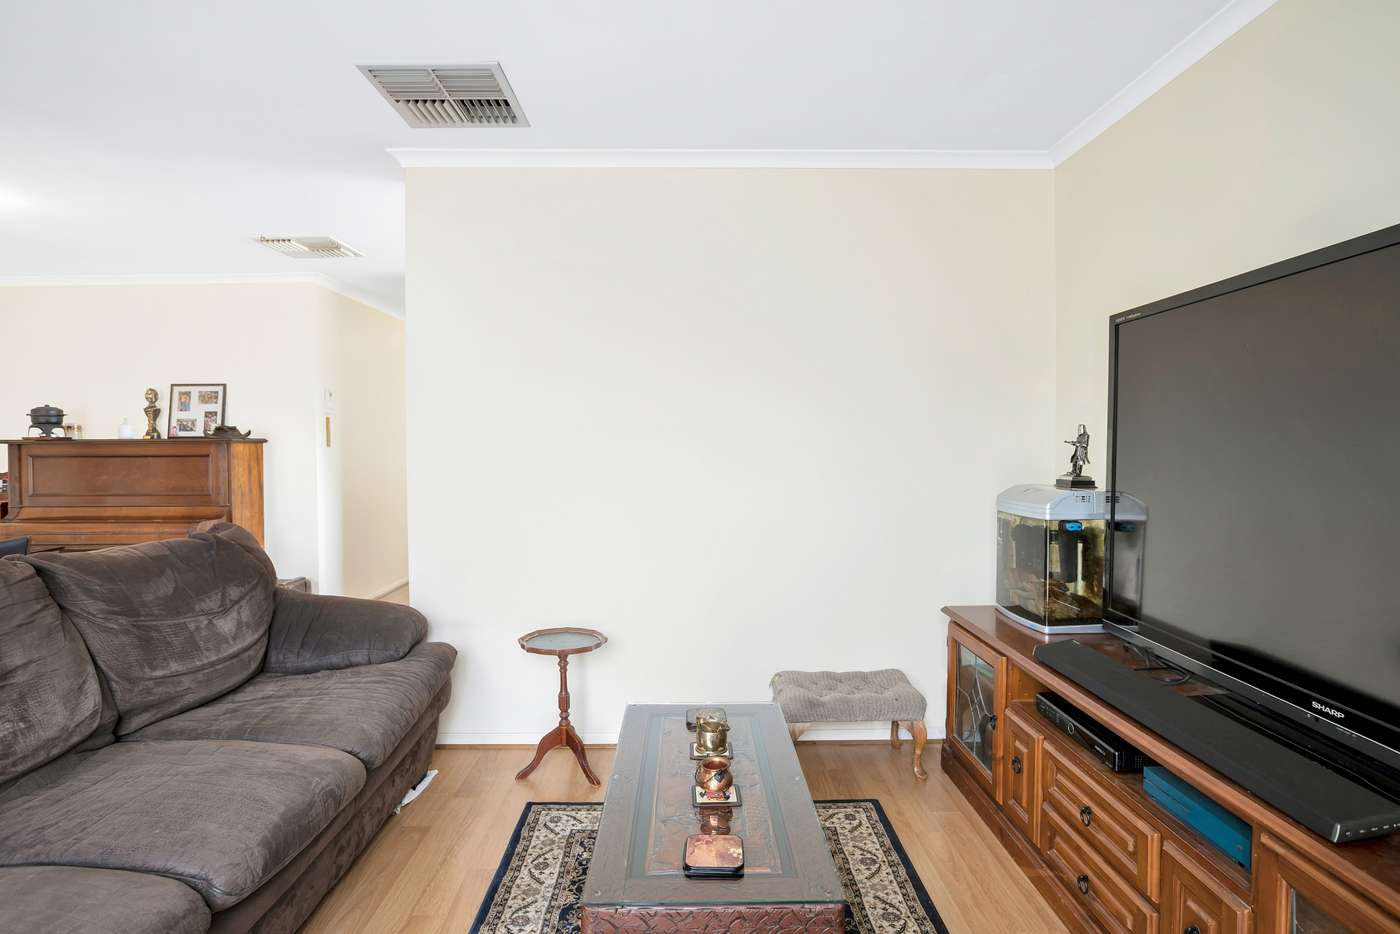 Fifth view of Homely house listing, 210 Brodie Road, Morphett Vale SA 5162